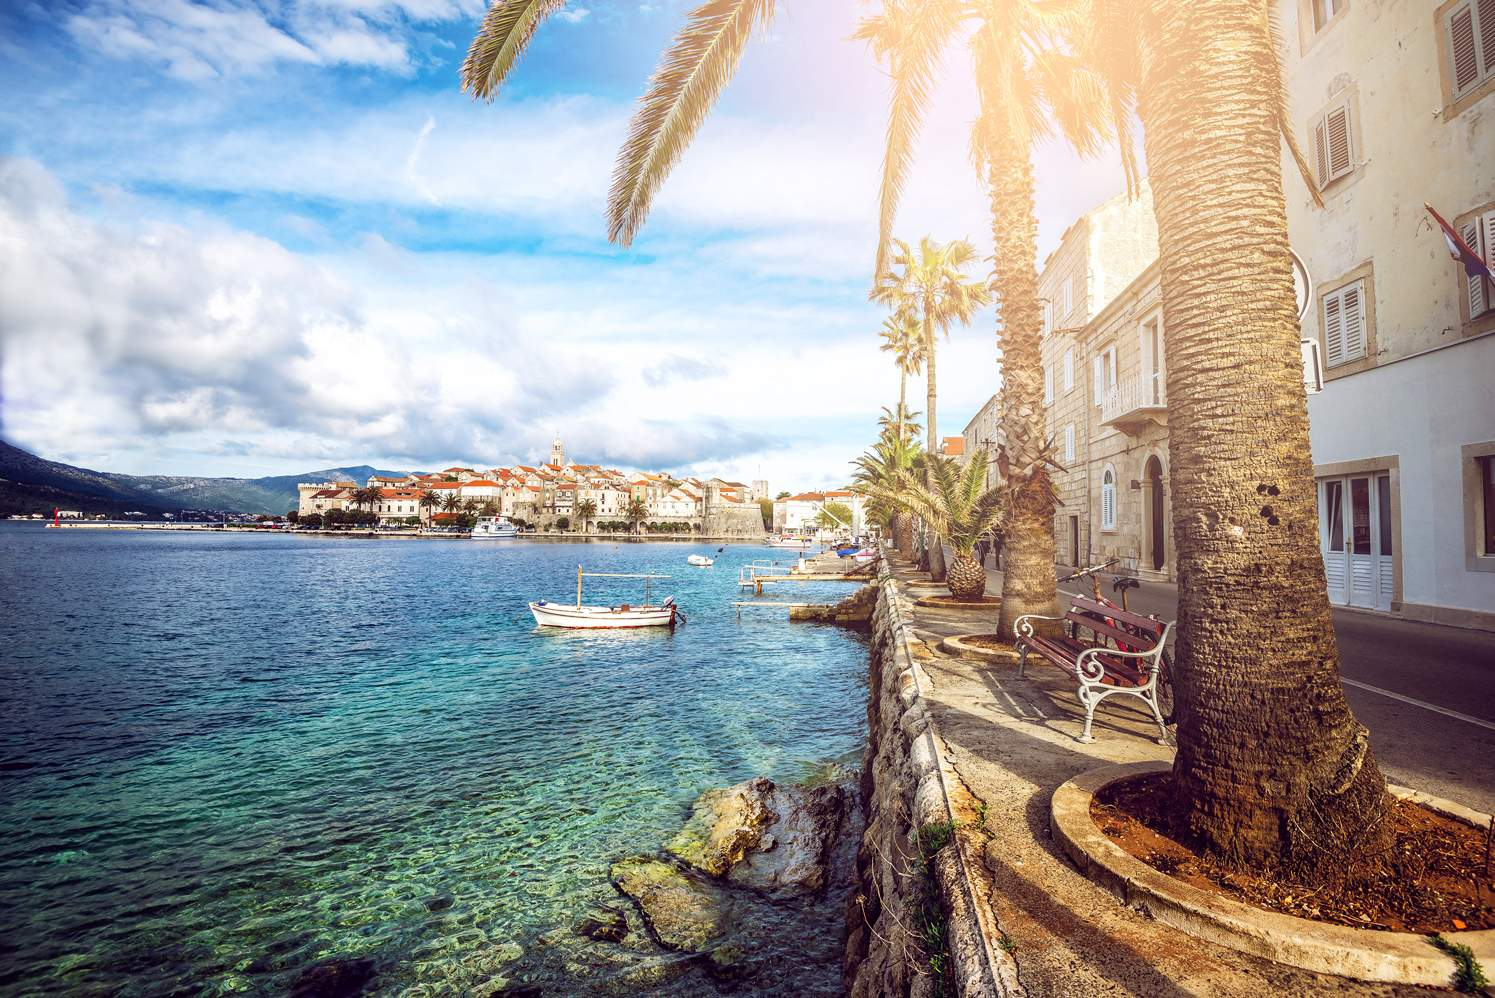 Top 10 Reasons to Visit Korčula This Summer